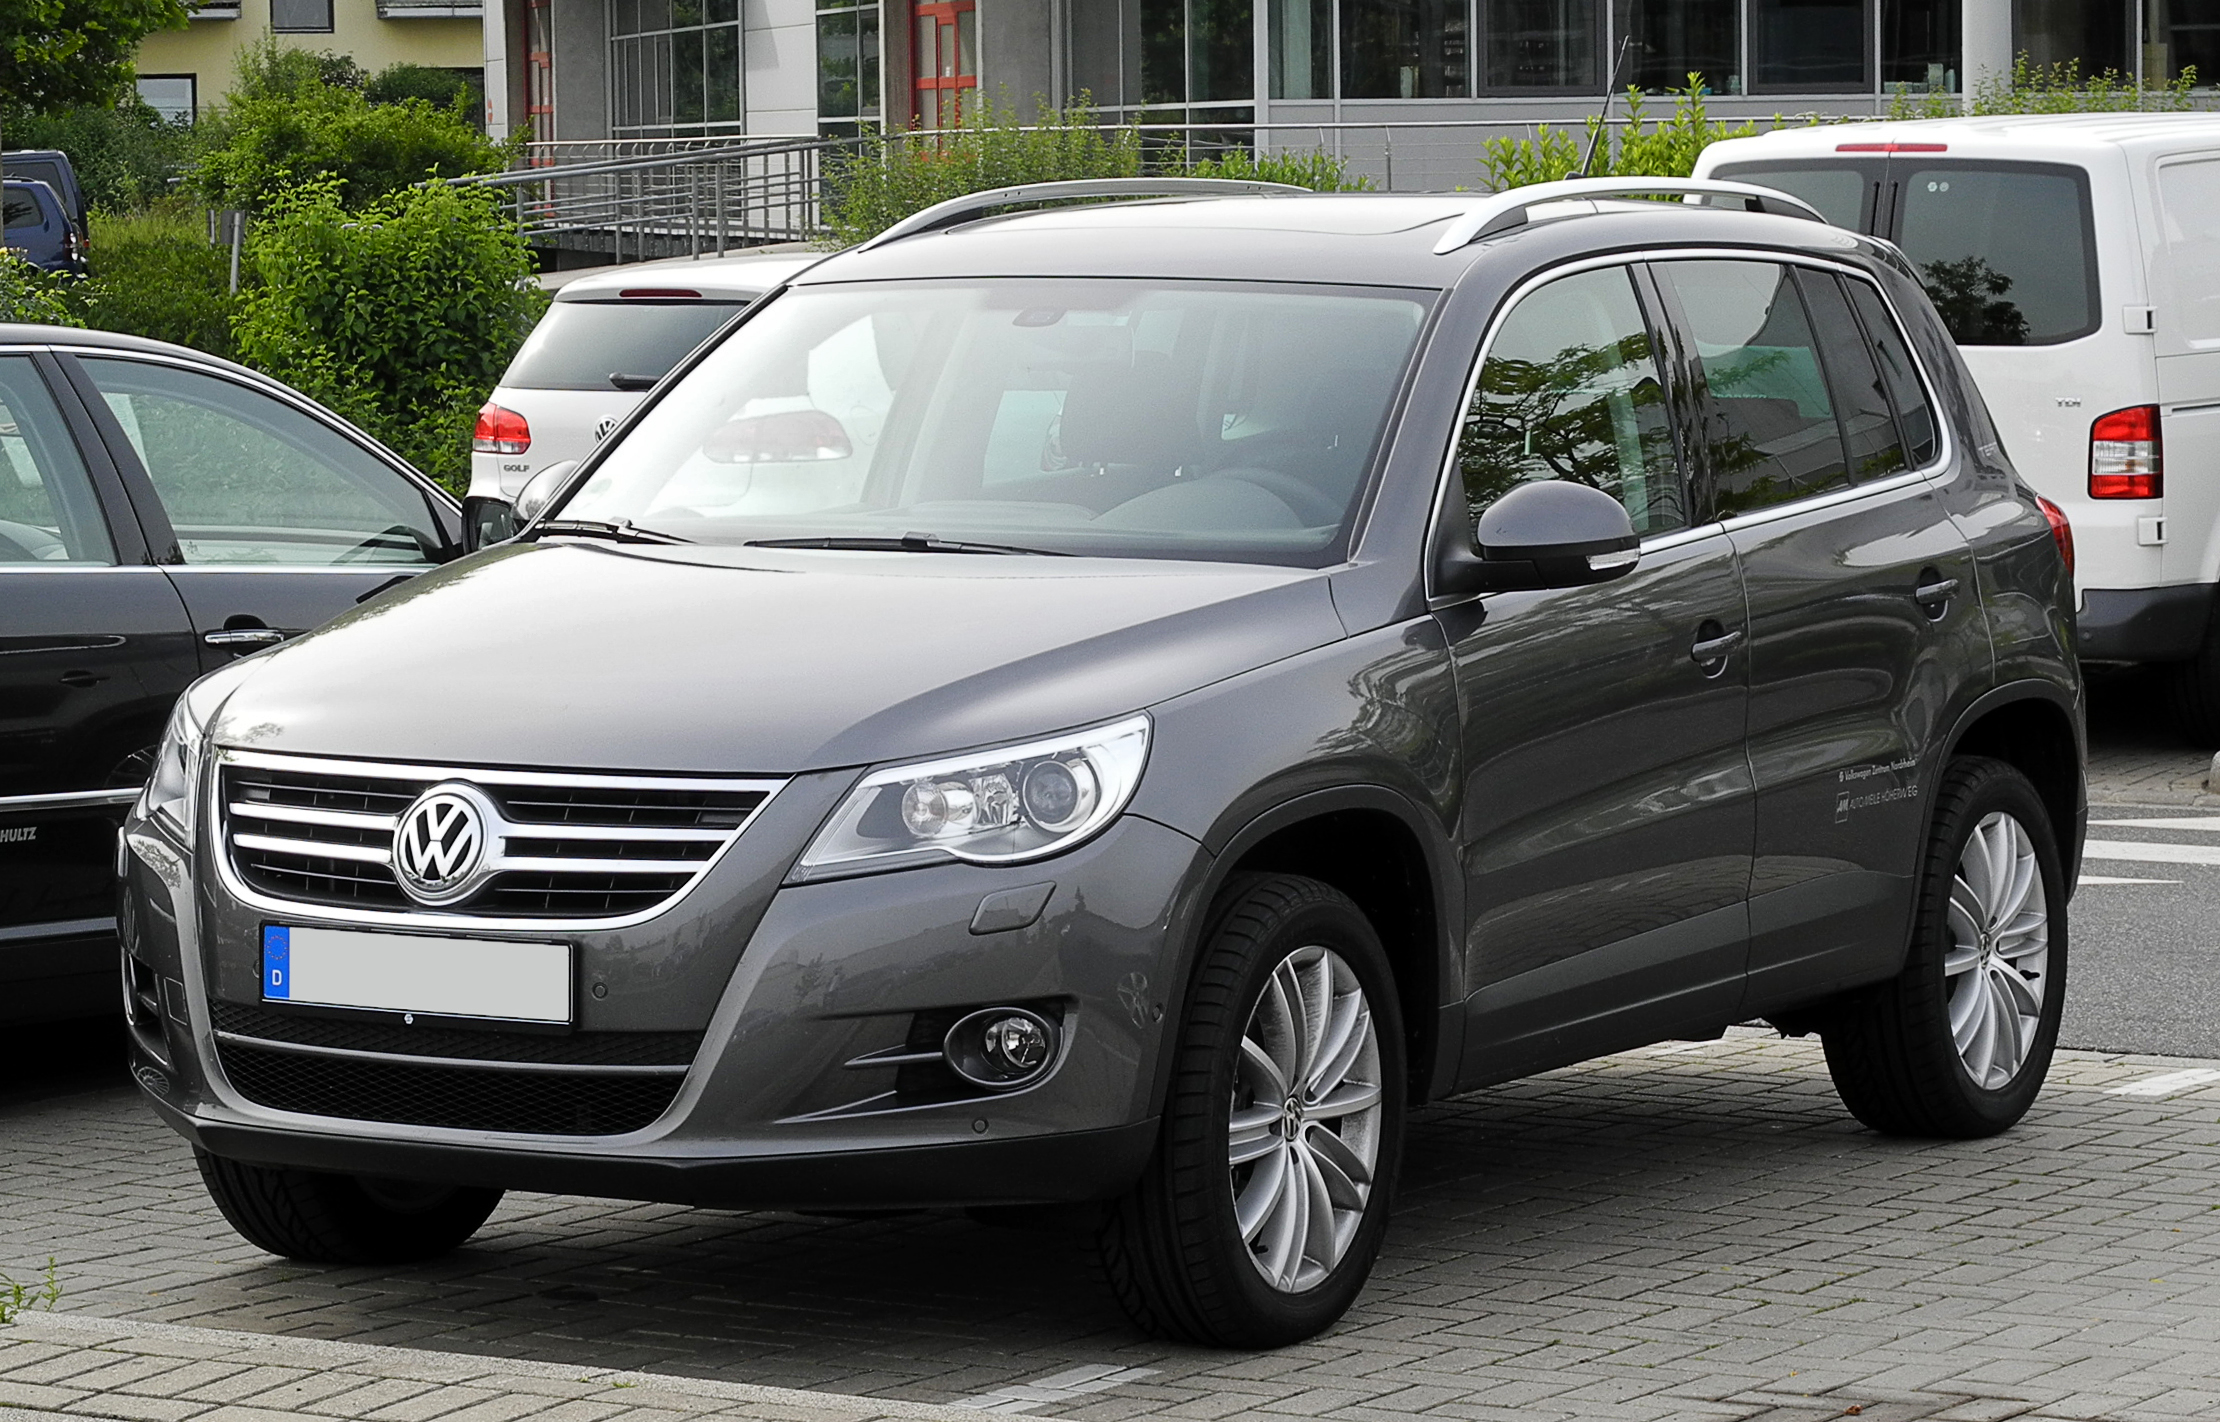 file vw tiguan sport style 2 0 tdi 4motion team frontansicht 12 juni 2011 d. Black Bedroom Furniture Sets. Home Design Ideas